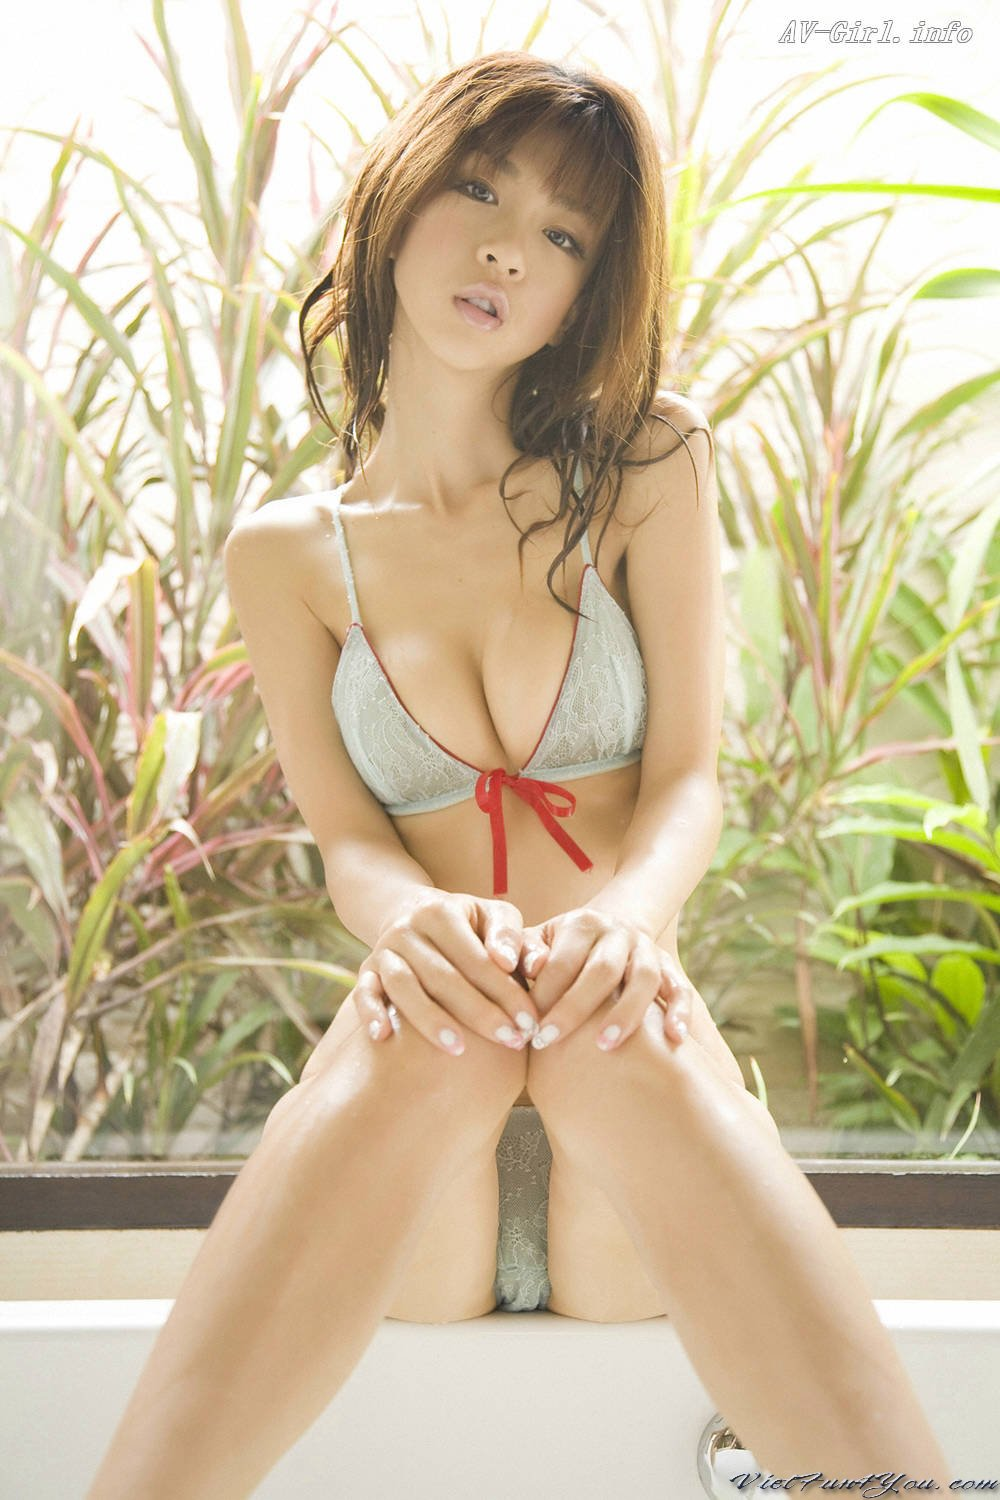 Other variant Japanese nude girls with finger have